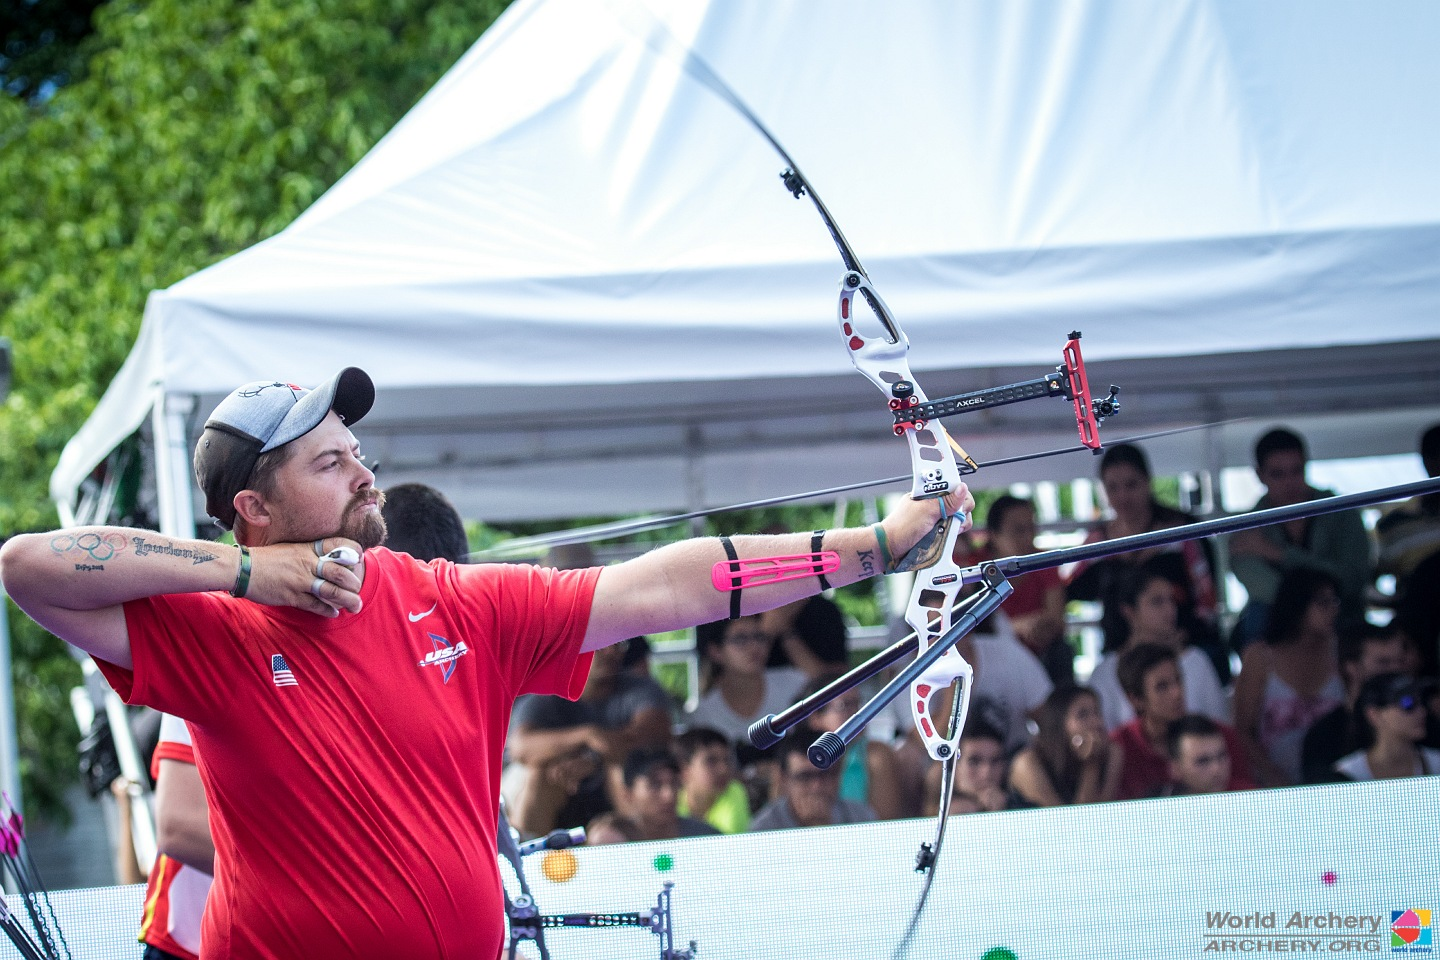 Rio 2016 Meet The US Olympic Archery Team Archery 360